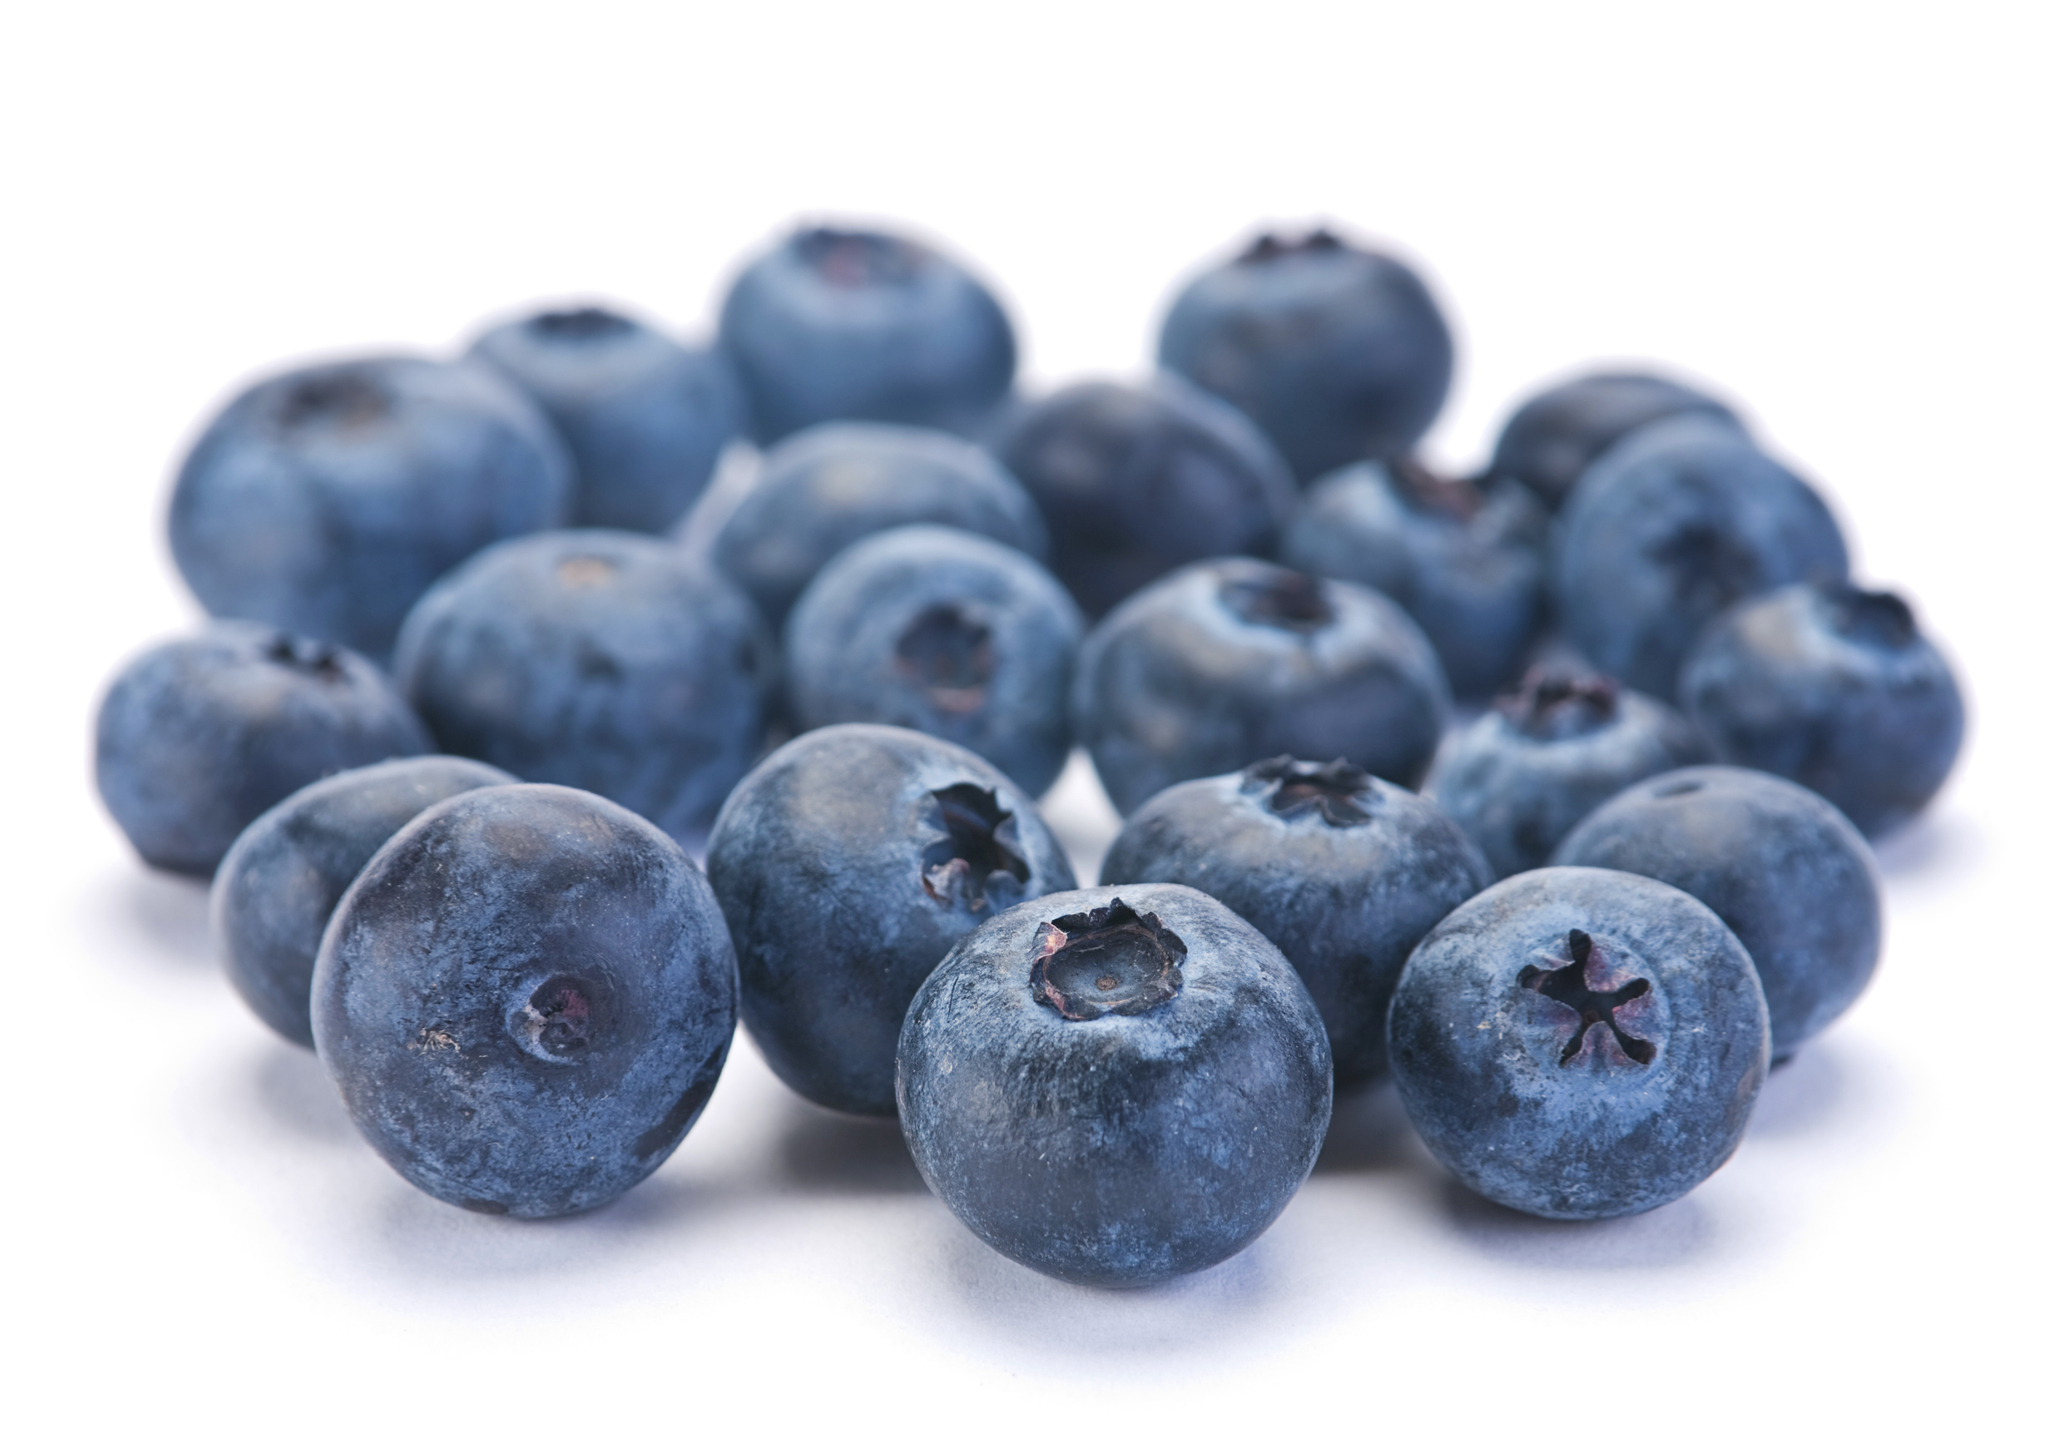 Detox food is good for you-blueberries